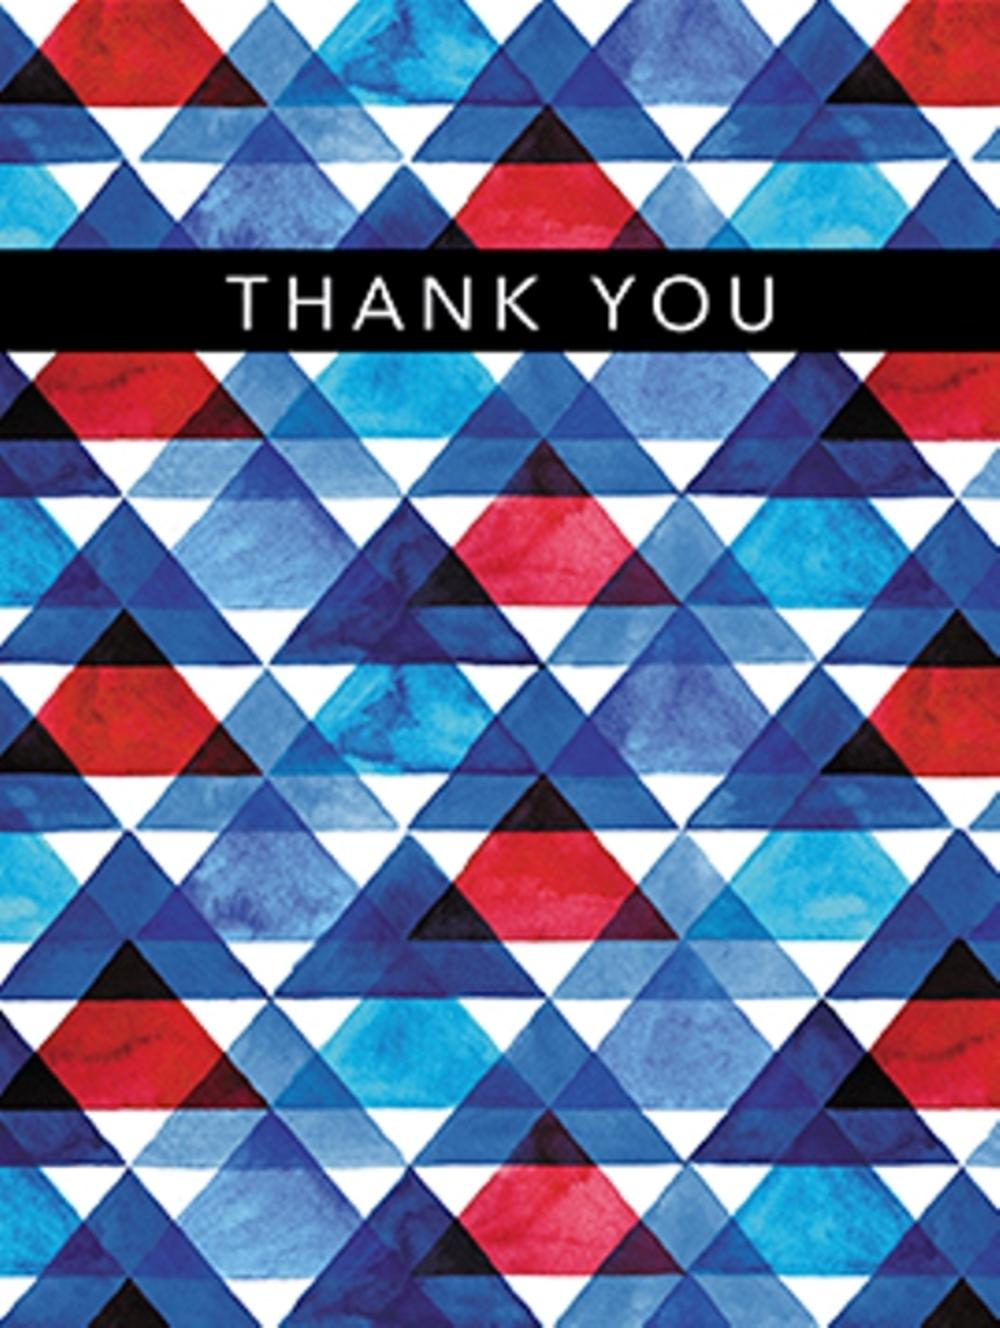 Pack of 4 Blank Thank You Greeting Cards Blank Inside